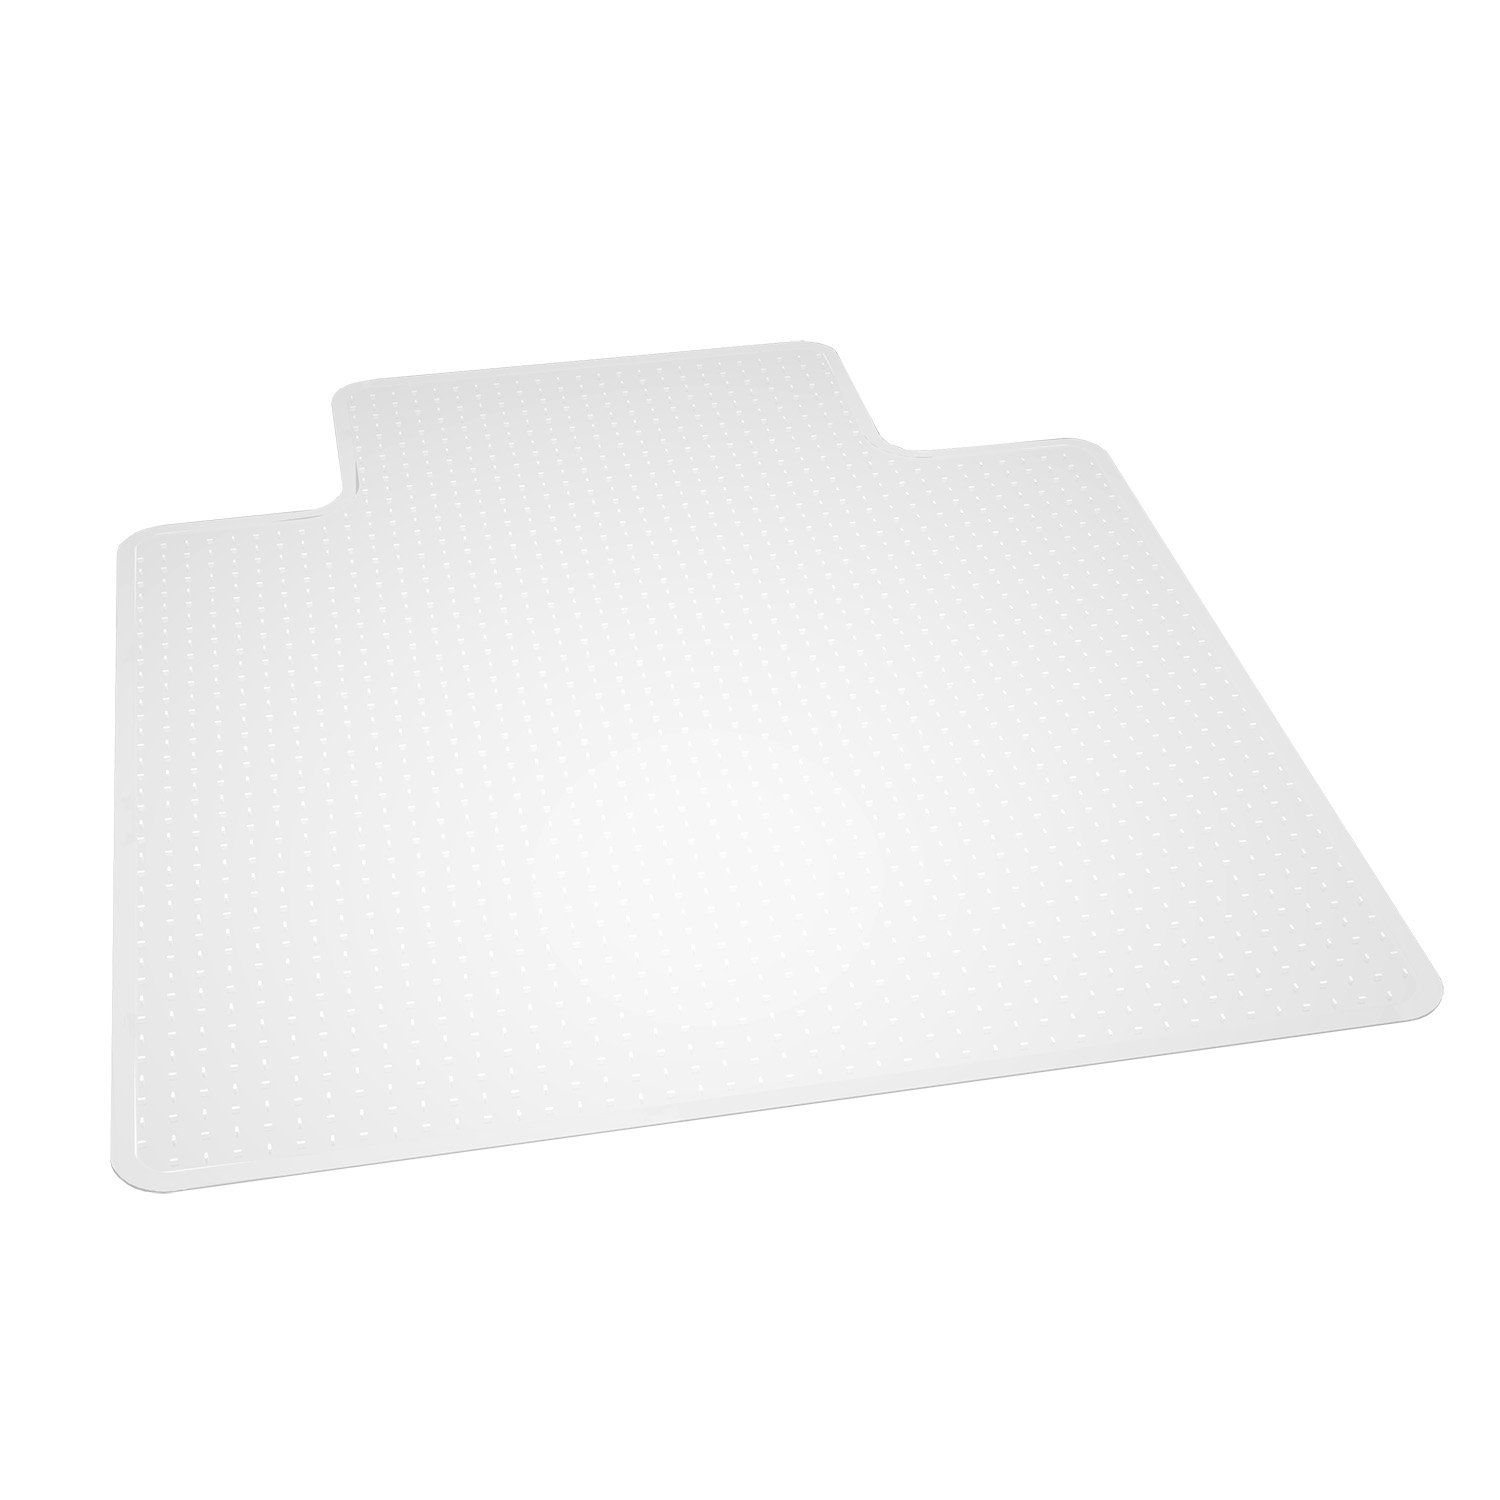 ES Robbins Office 122083 Carpet 36 x 48 Chairmat with Lip, Clear, 1 Each by Aleco